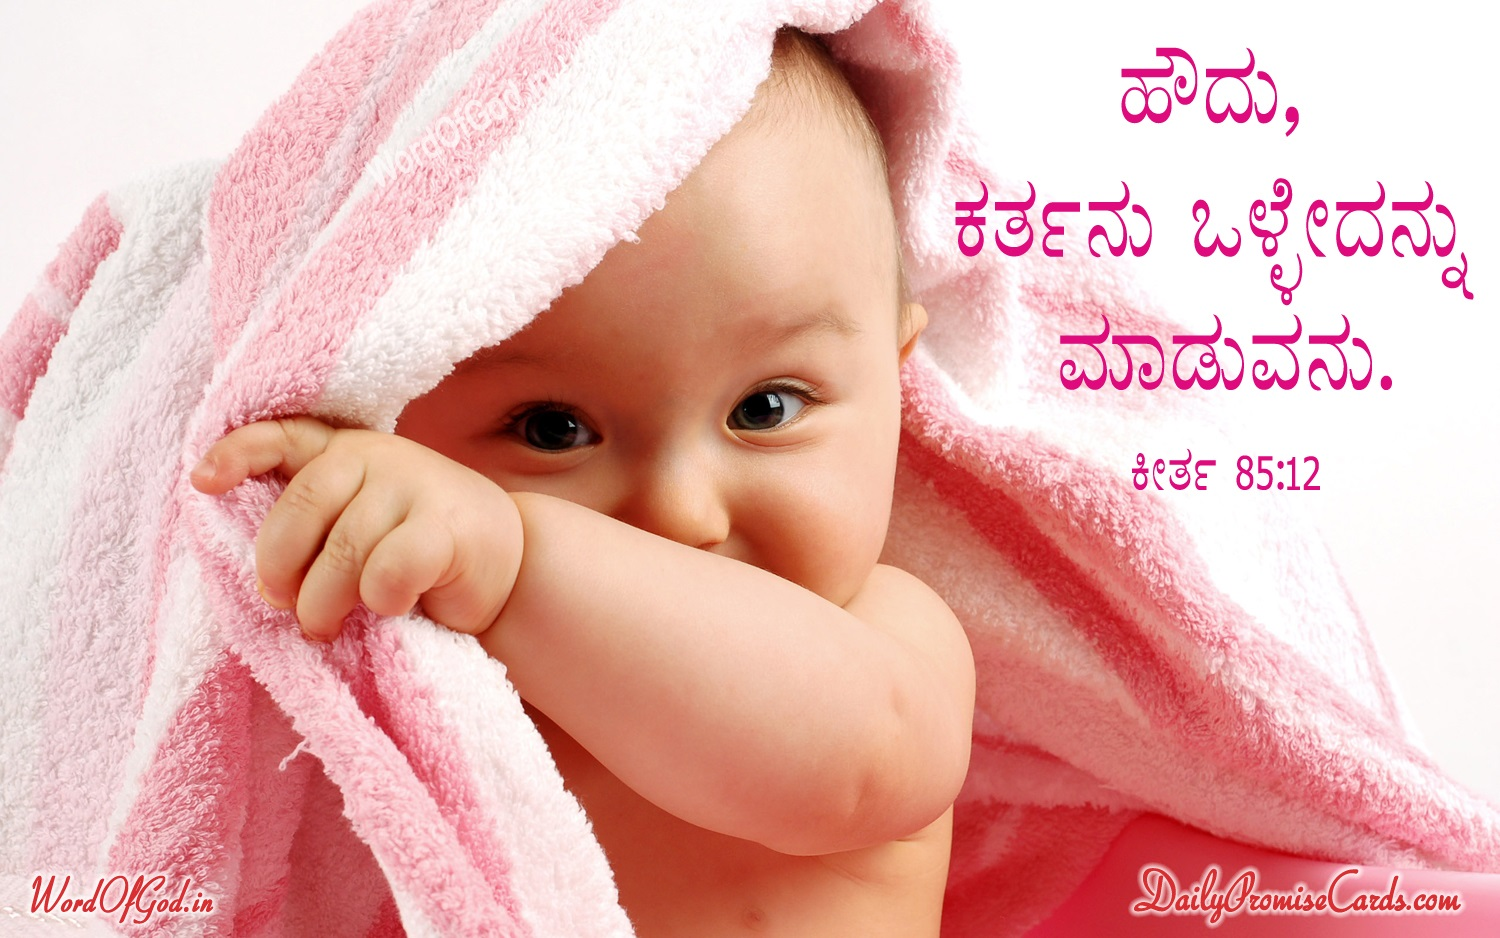 Kannada-Promise-Cards-Psalms-85-12